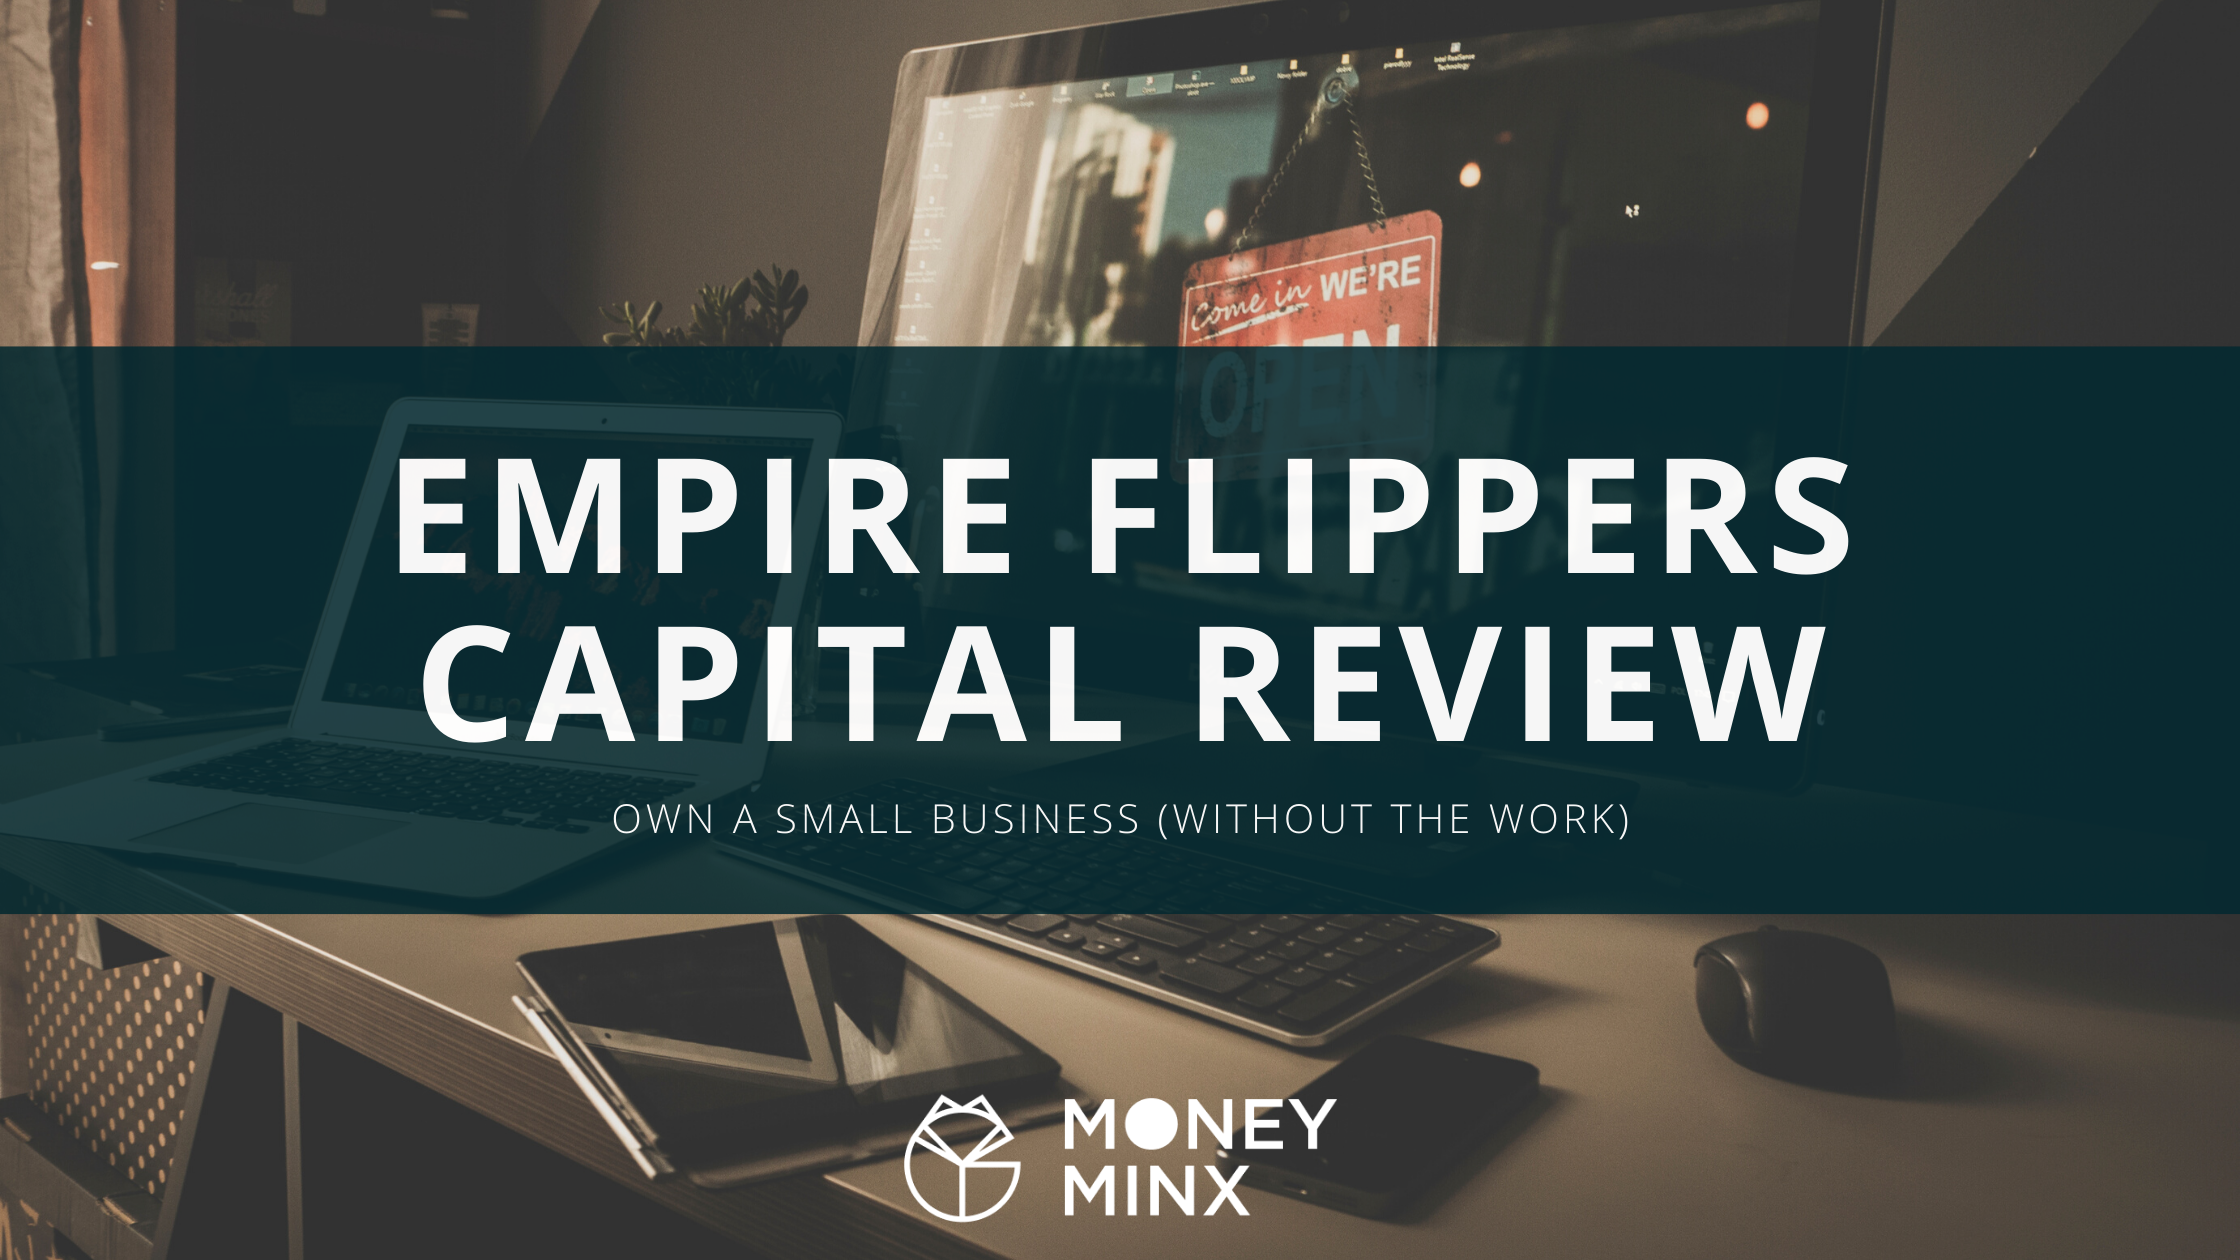 Empire Flippers Capital Review